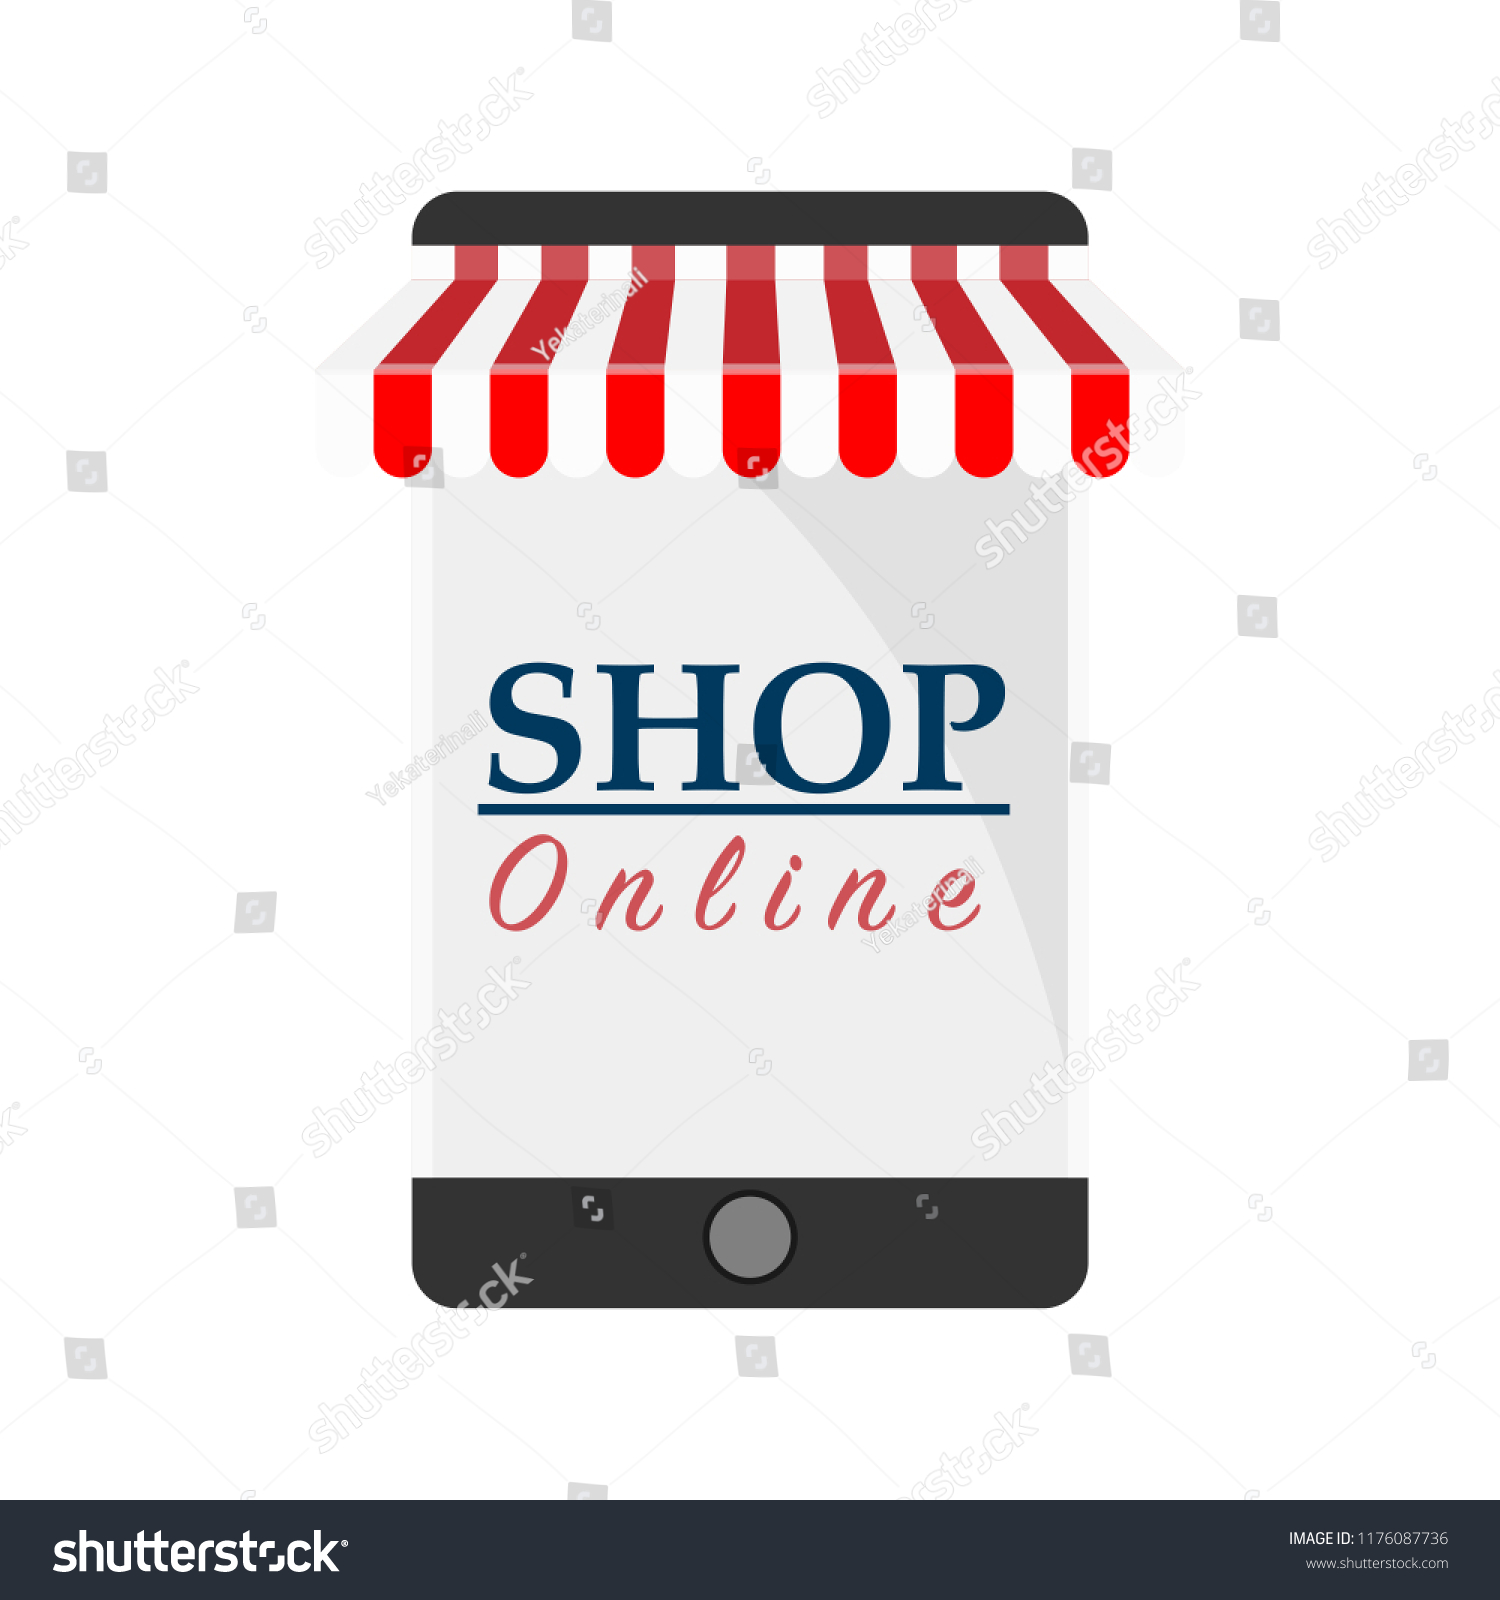 Online trade icon. Semi-annual sale. Shop online. Weekend specials. discount 066386e5ff4